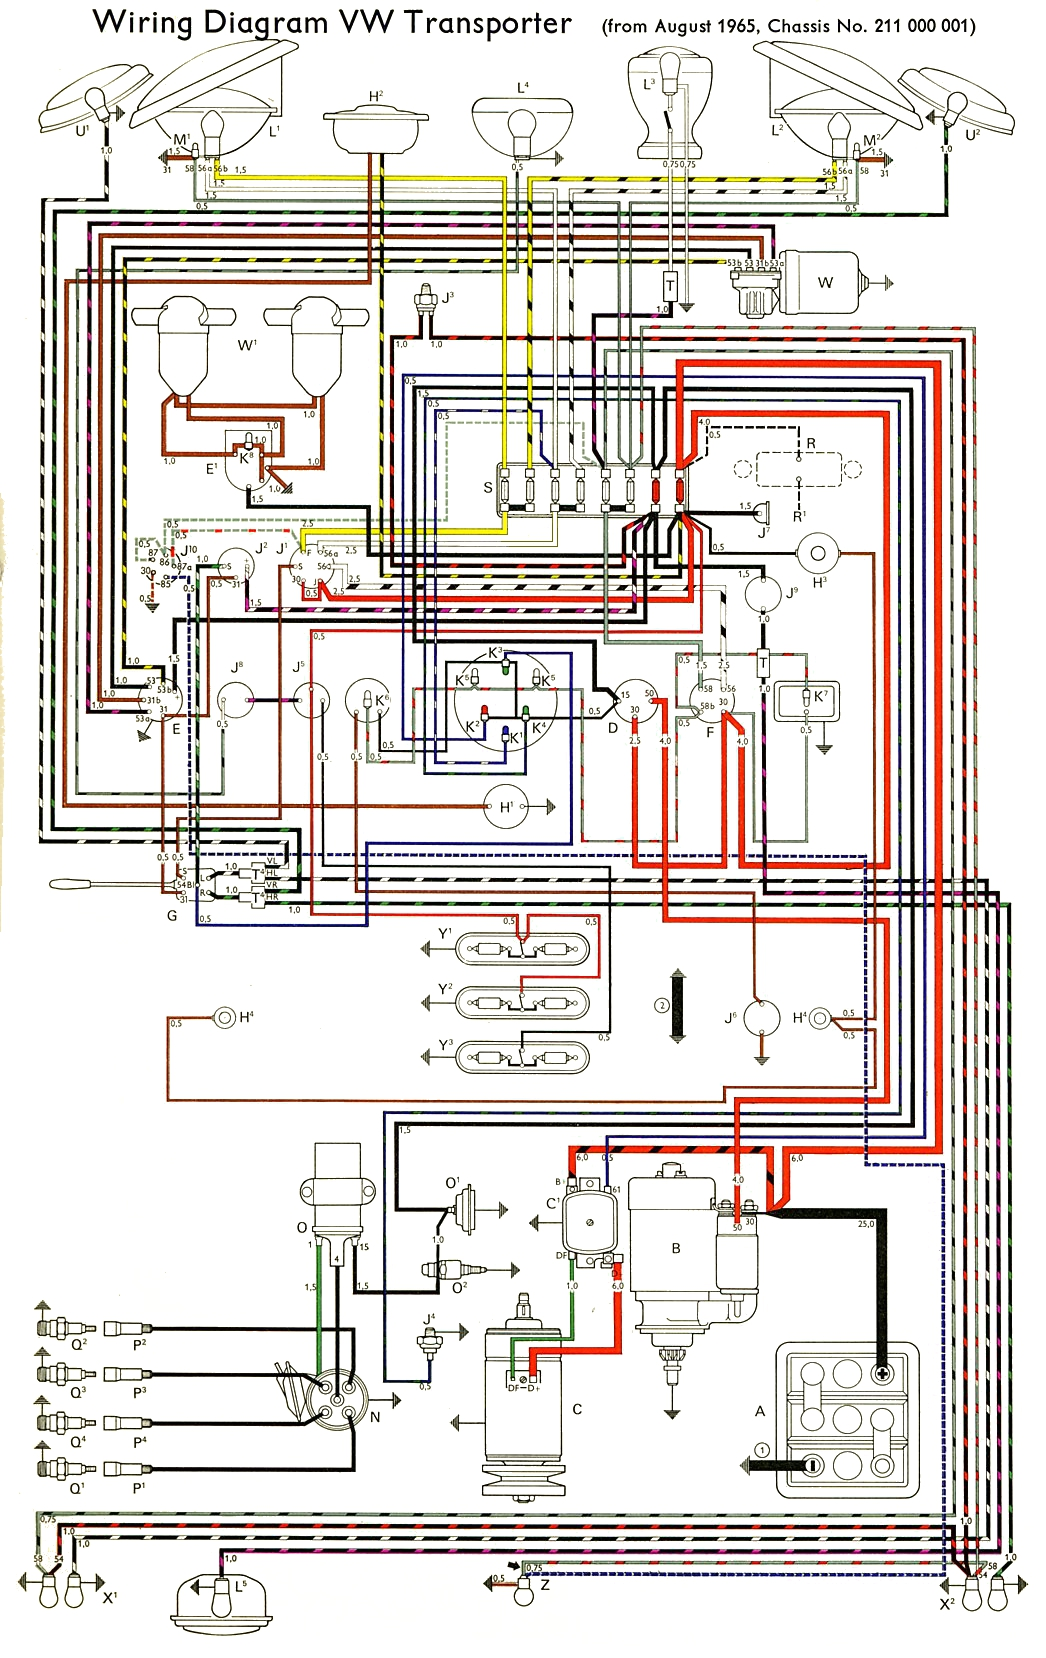 bus_66 electrical wiring diagrams beetle 1971 electrical wiring vw golf 3 electrical wiring diagram at mifinder.co